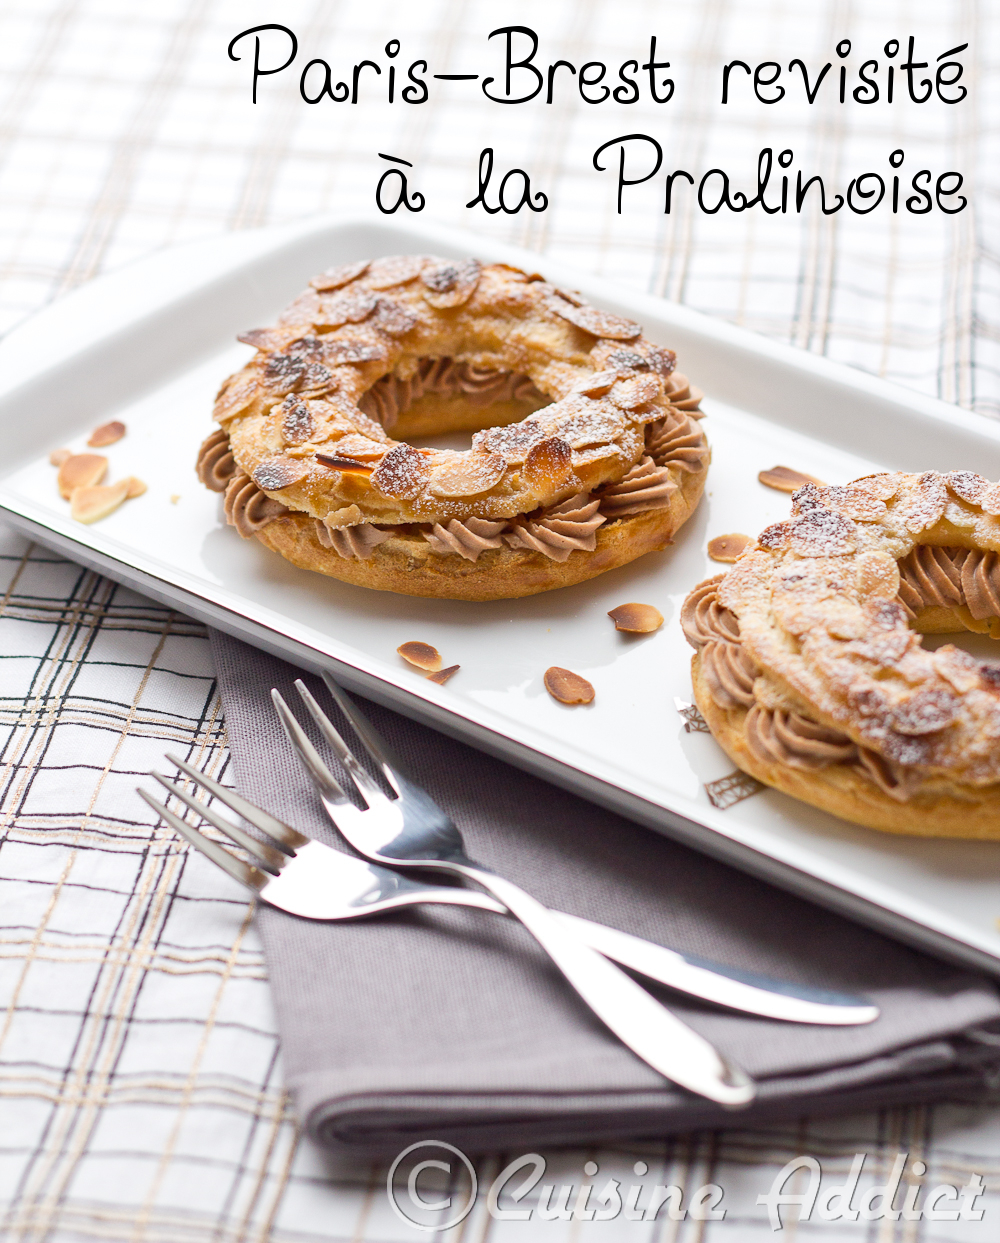 paris brest revisit la pralinoise cuisine addict. Black Bedroom Furniture Sets. Home Design Ideas